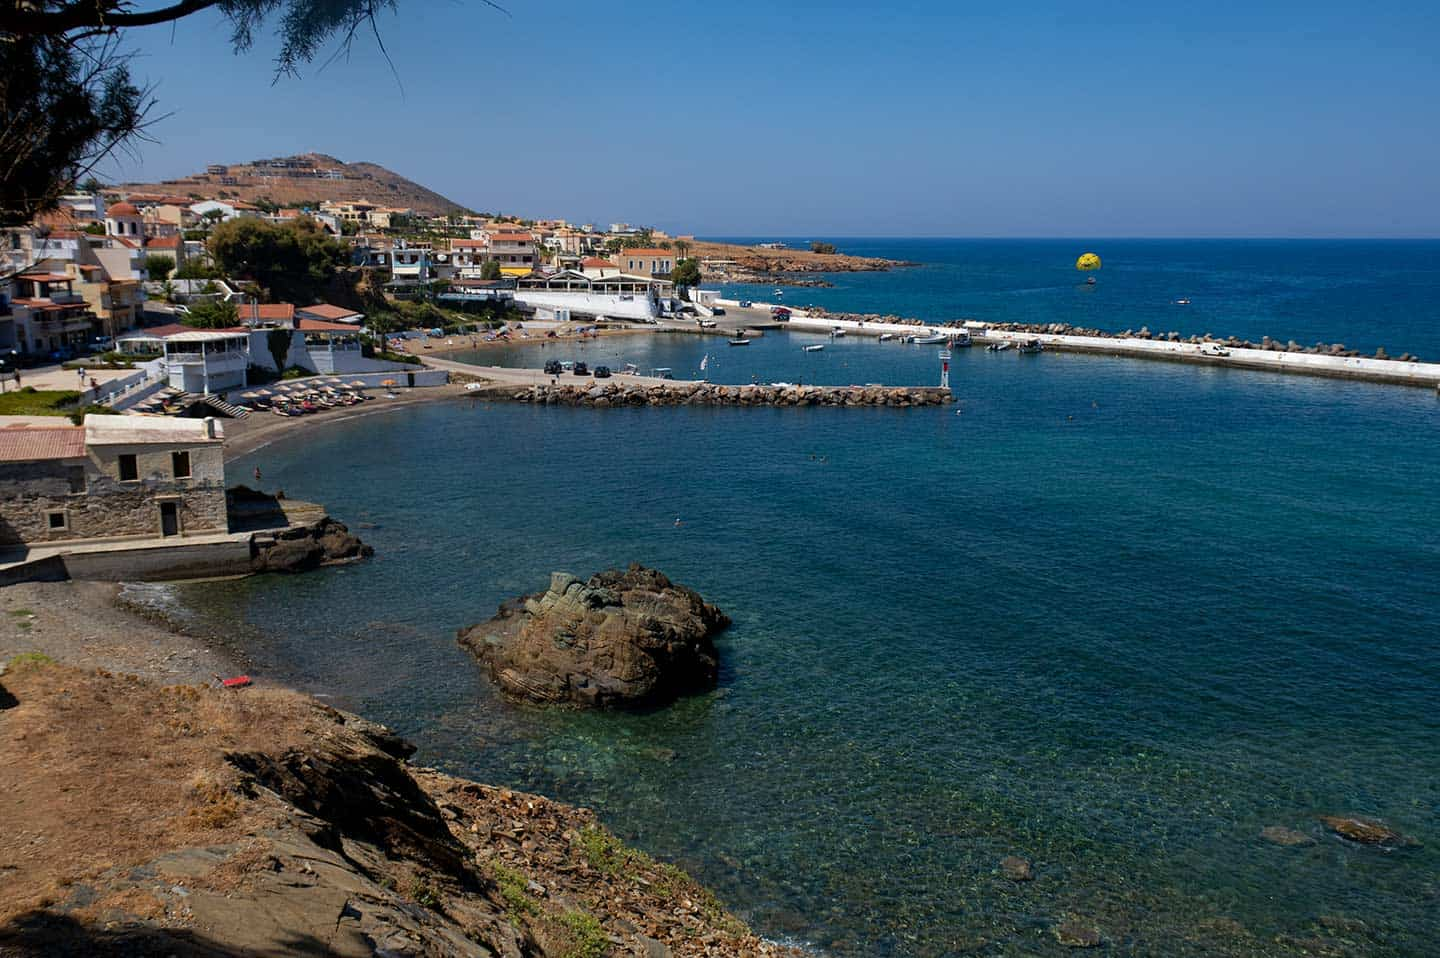 Panormo Beach Image of the beaches and village in Panormos Crete